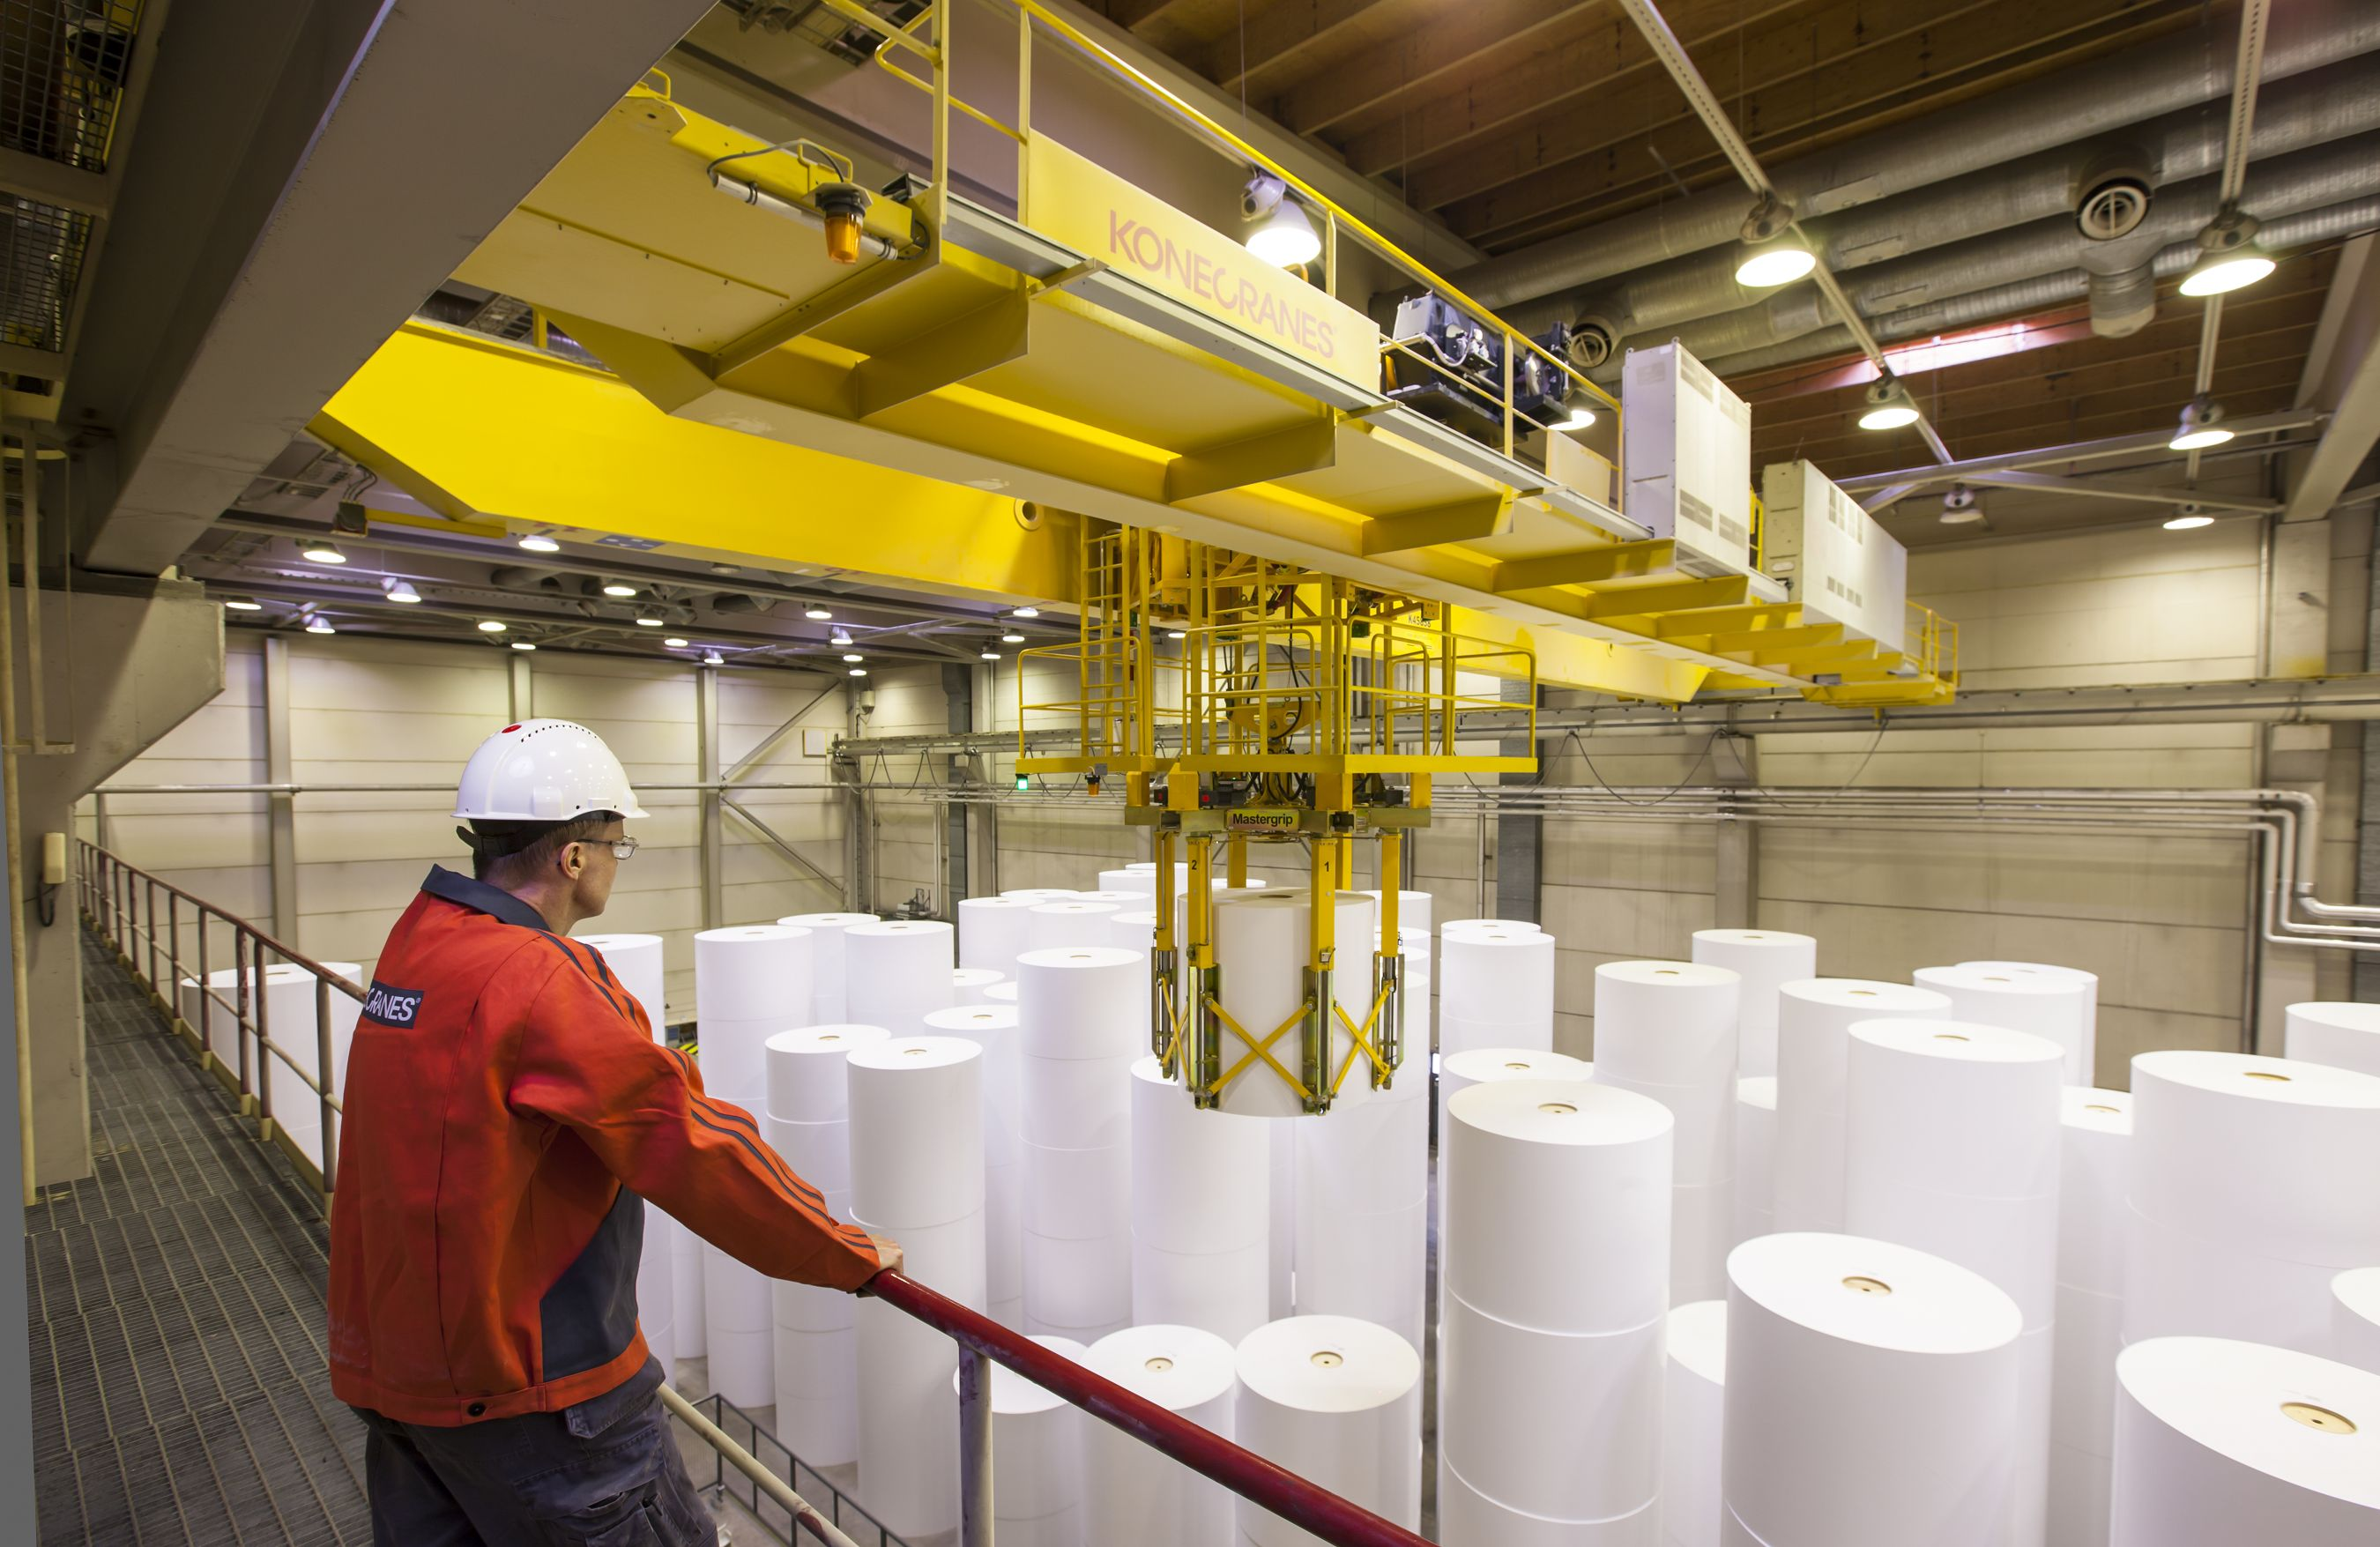 Konecranes Has Every Stage Of The Pulp And Paper Industry